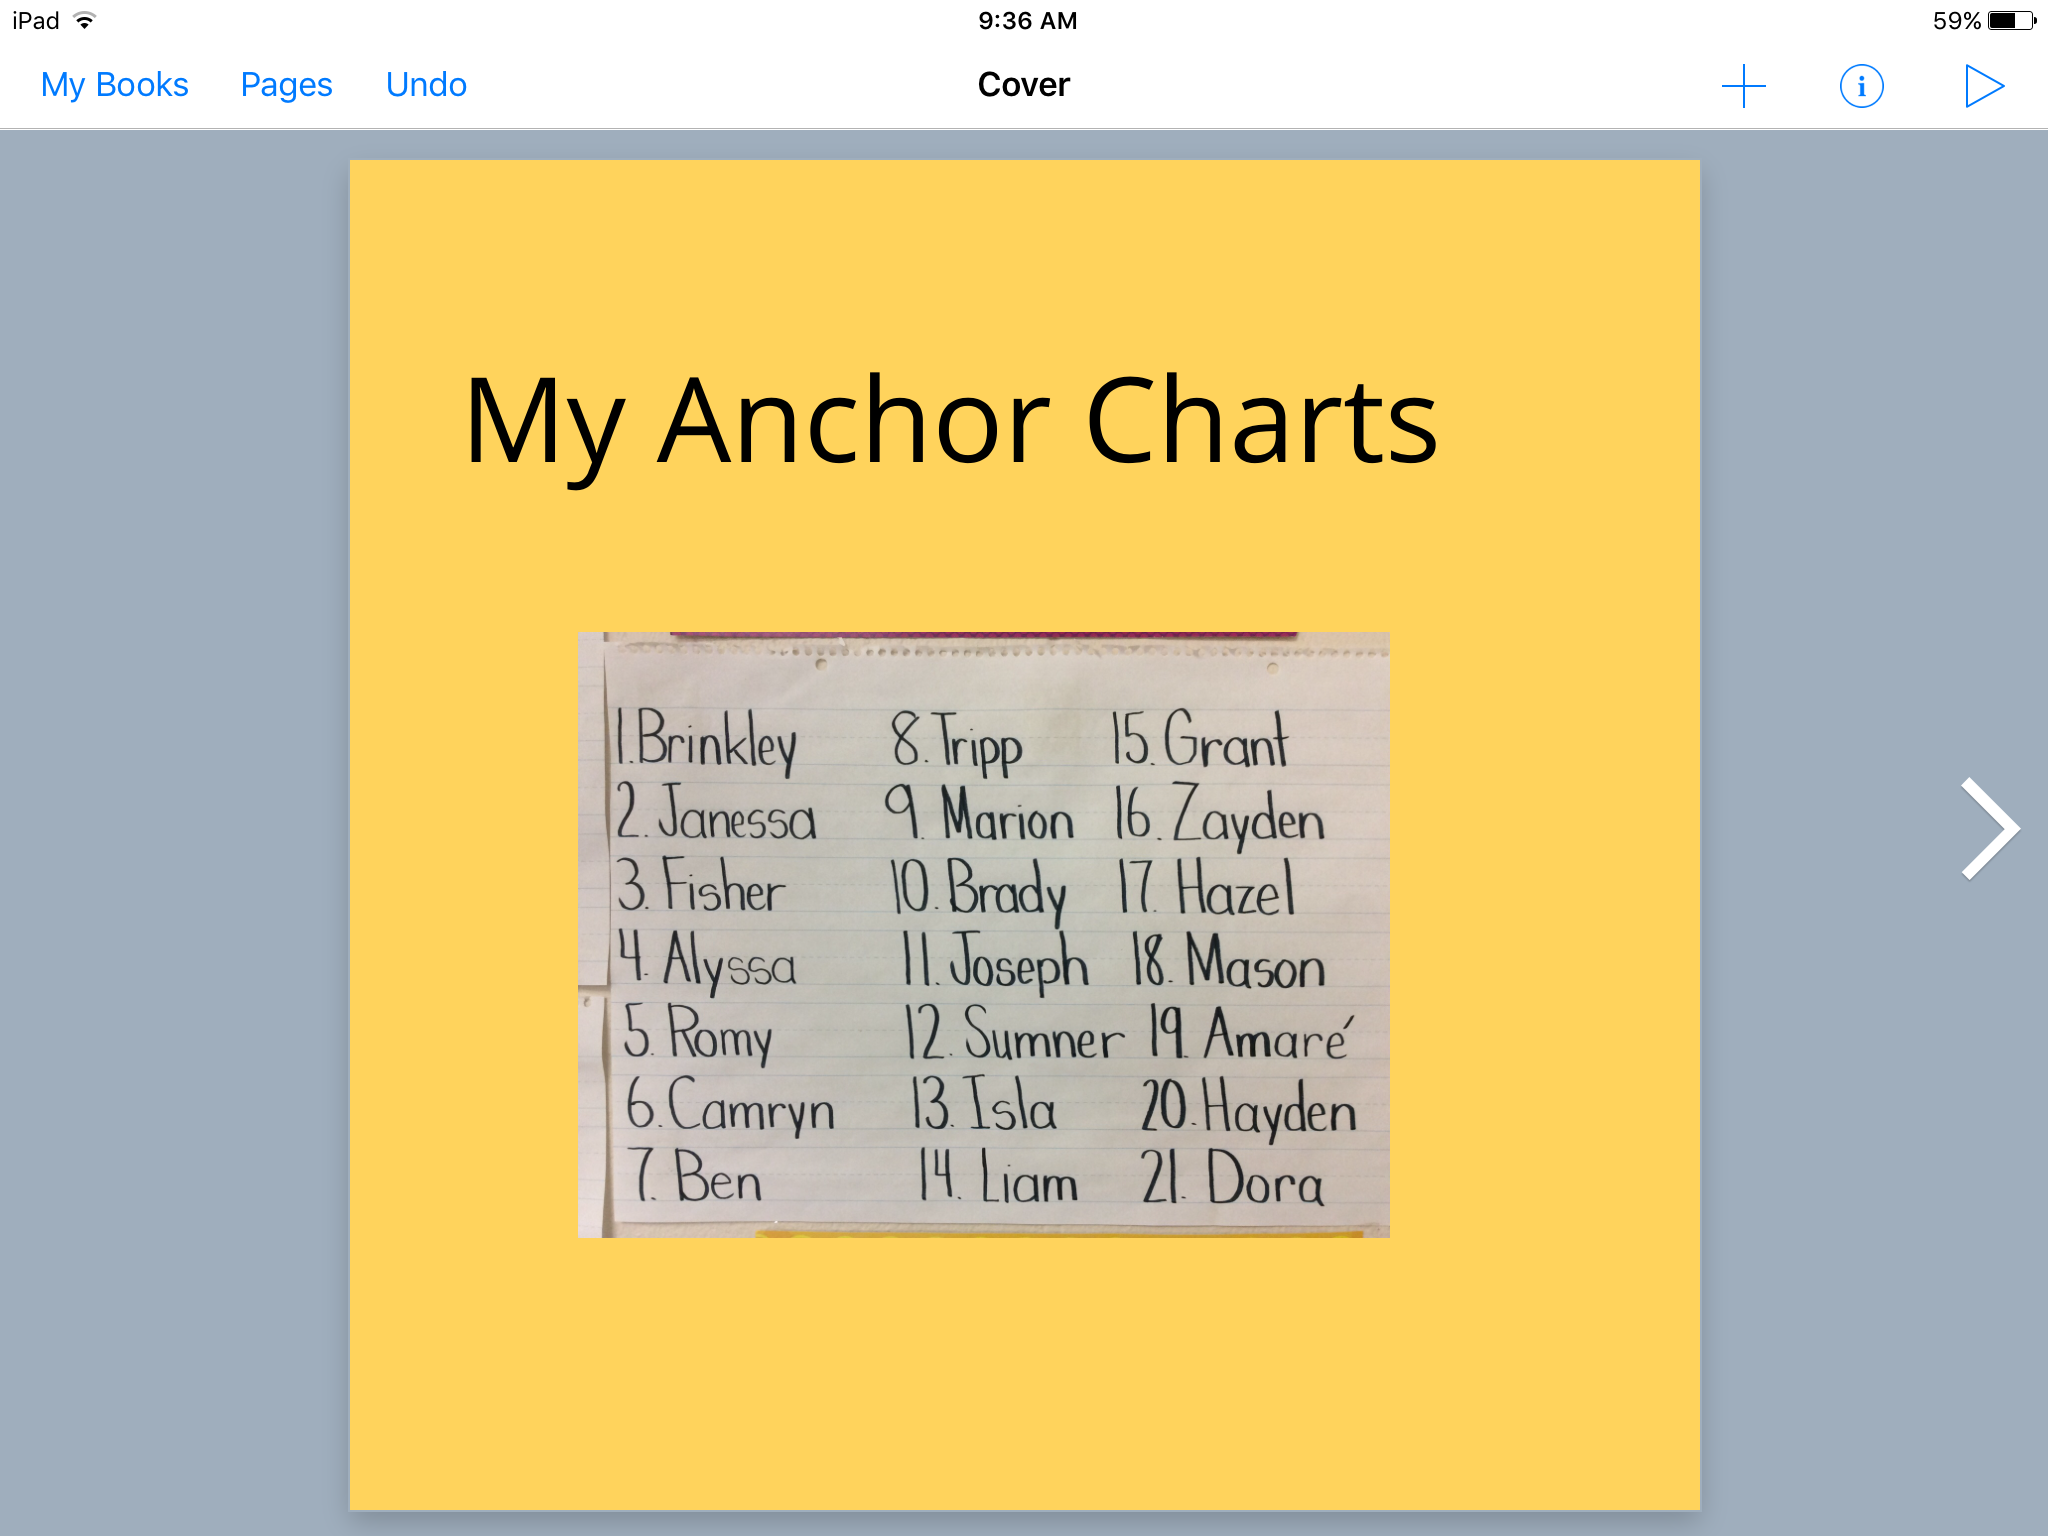 Anchor Charts and Book Creator | iTeach with iPads